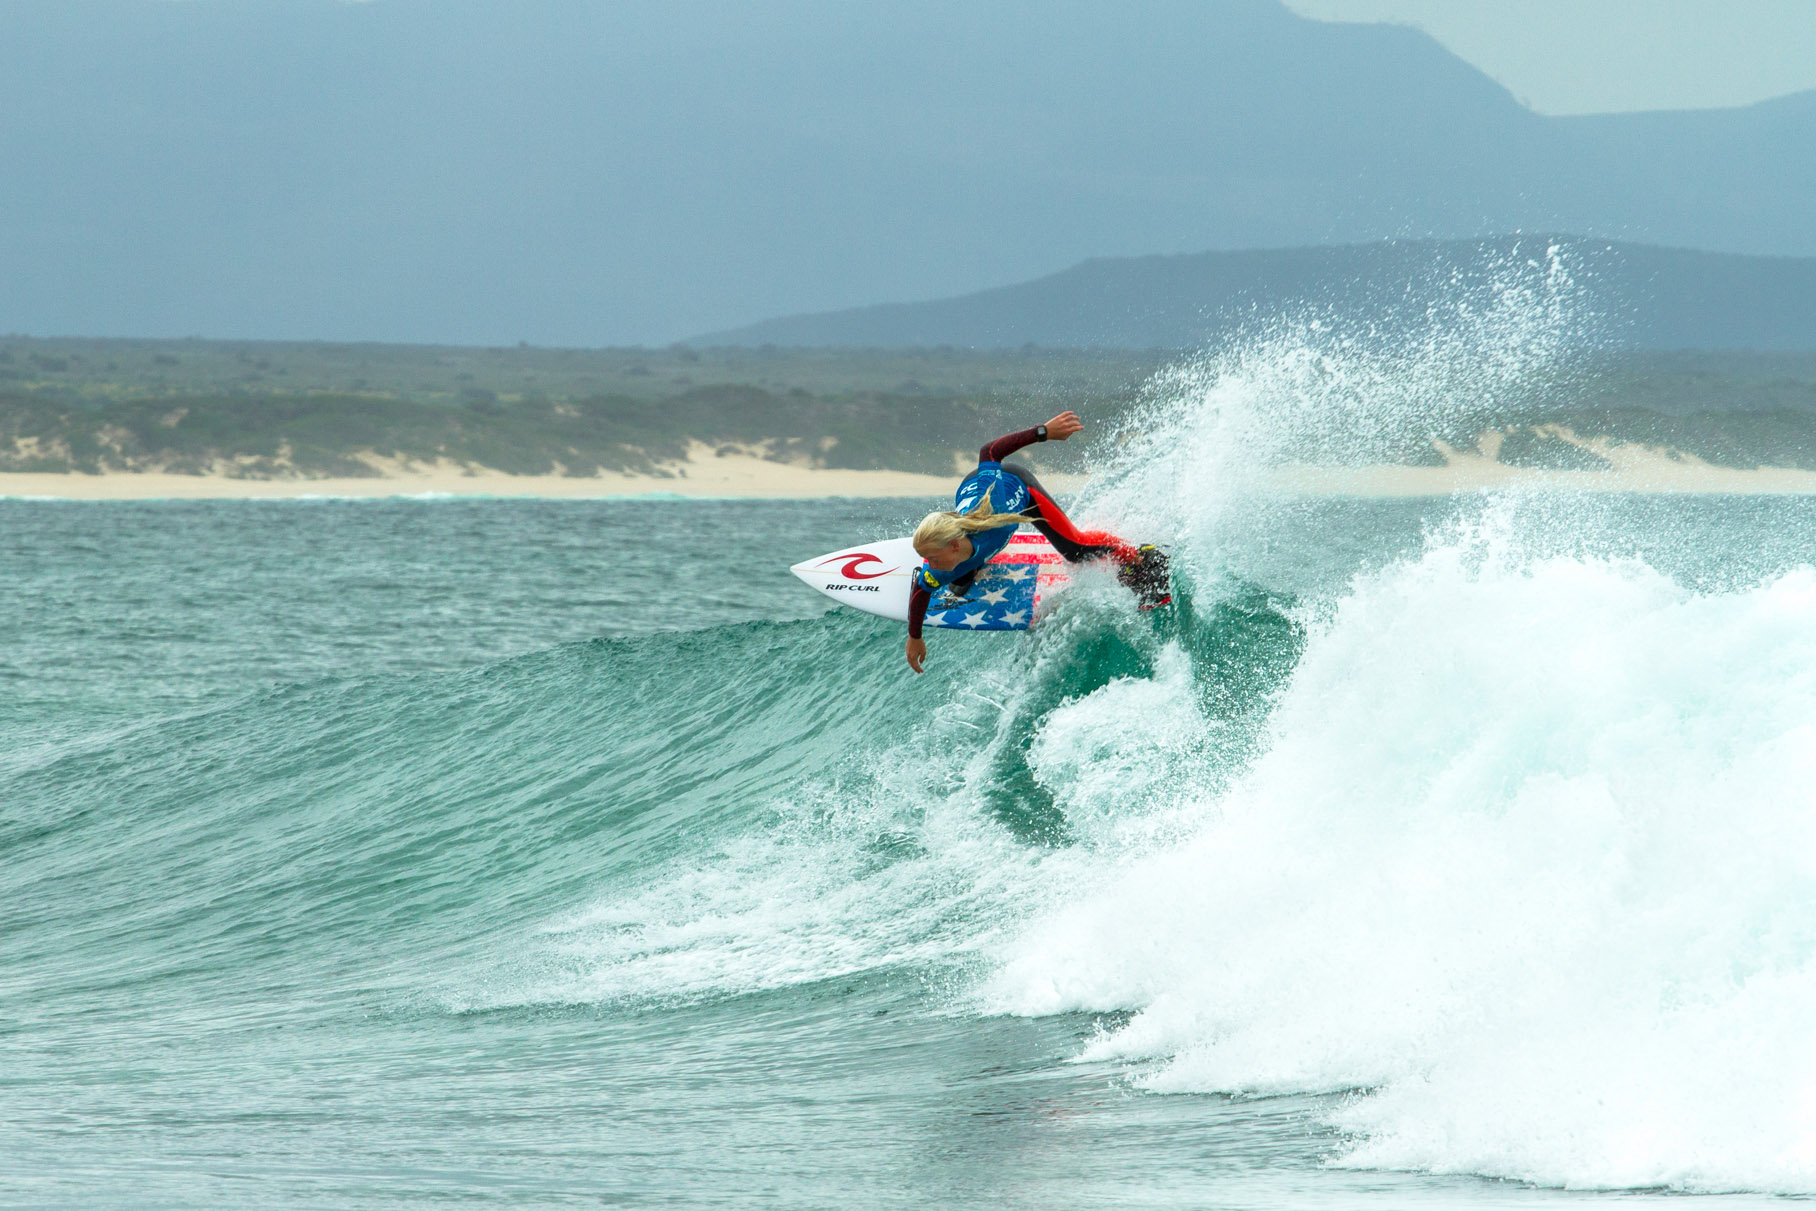 The second edition of the popular BOS Cape Crown presented by Billabong surfing contest returns to Long Beach